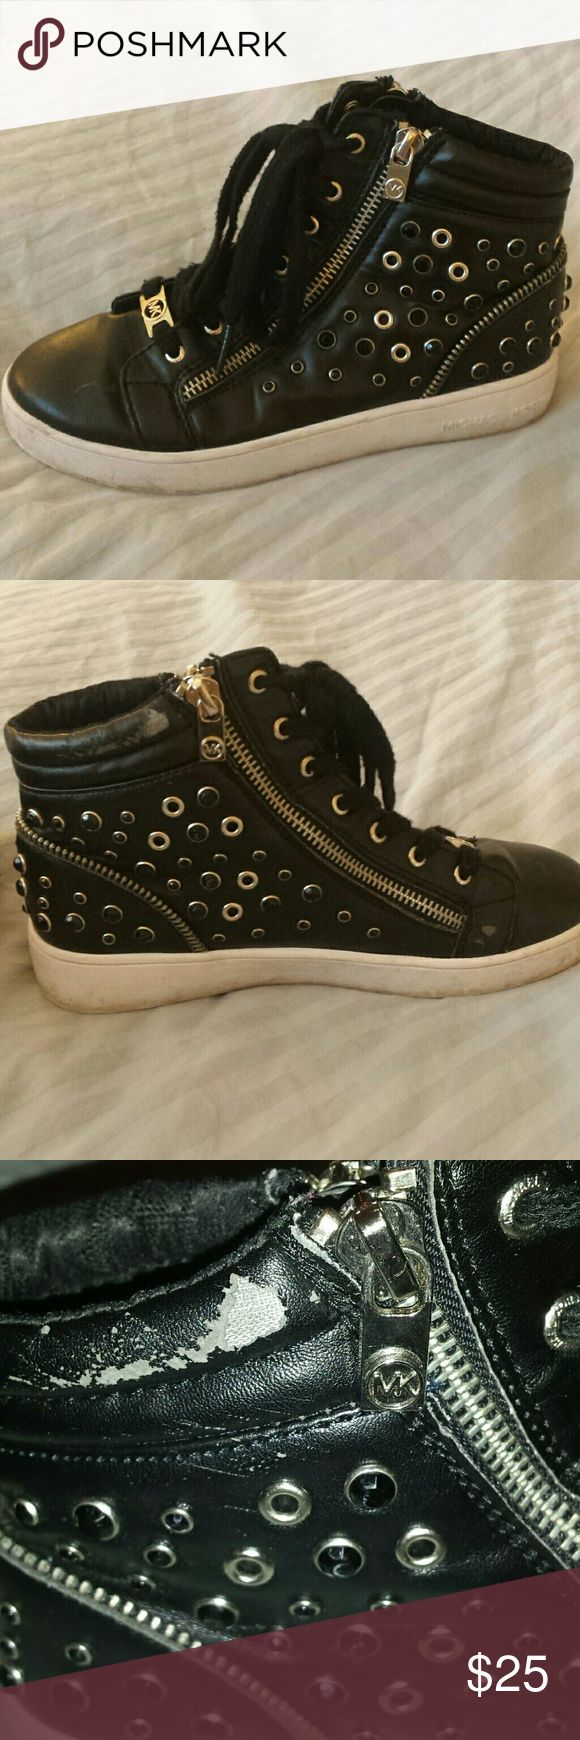 Michael Kors Girls high top sneakers Michael Kors Girls high top sneakers with zippers and rhinestones.  Some peeling on the inside fabric.  All man made materials.  Looks very nice on. Still have a lot of life left in them. Michael Kors Shoes Sneakers